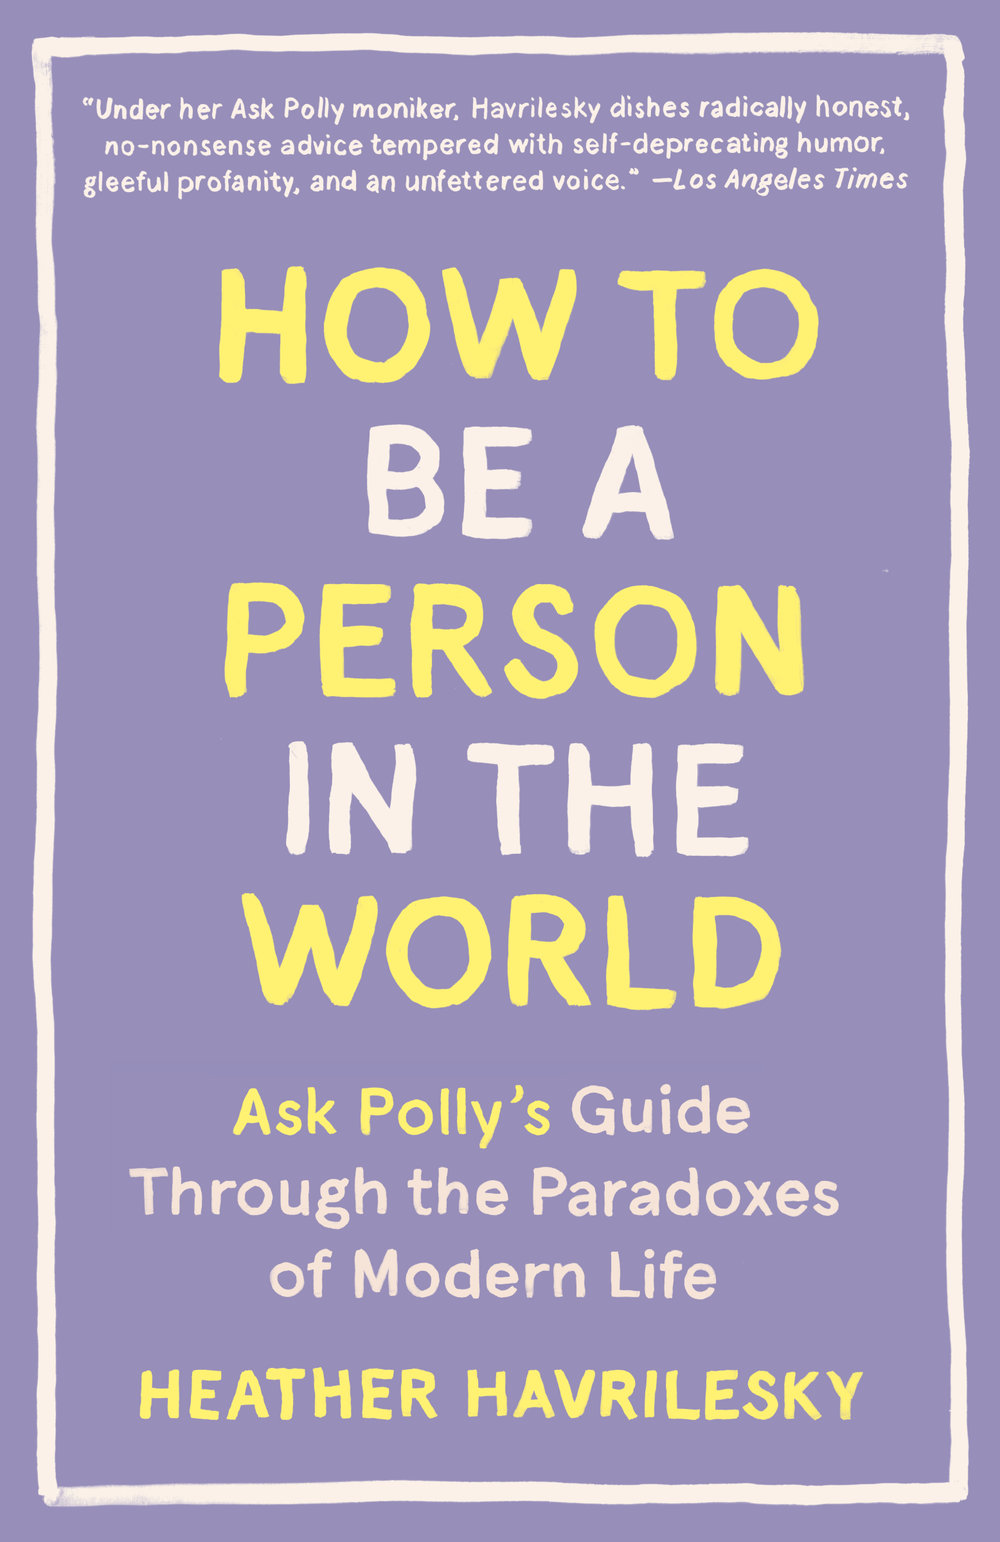 how to be a person in the world pb.jpg